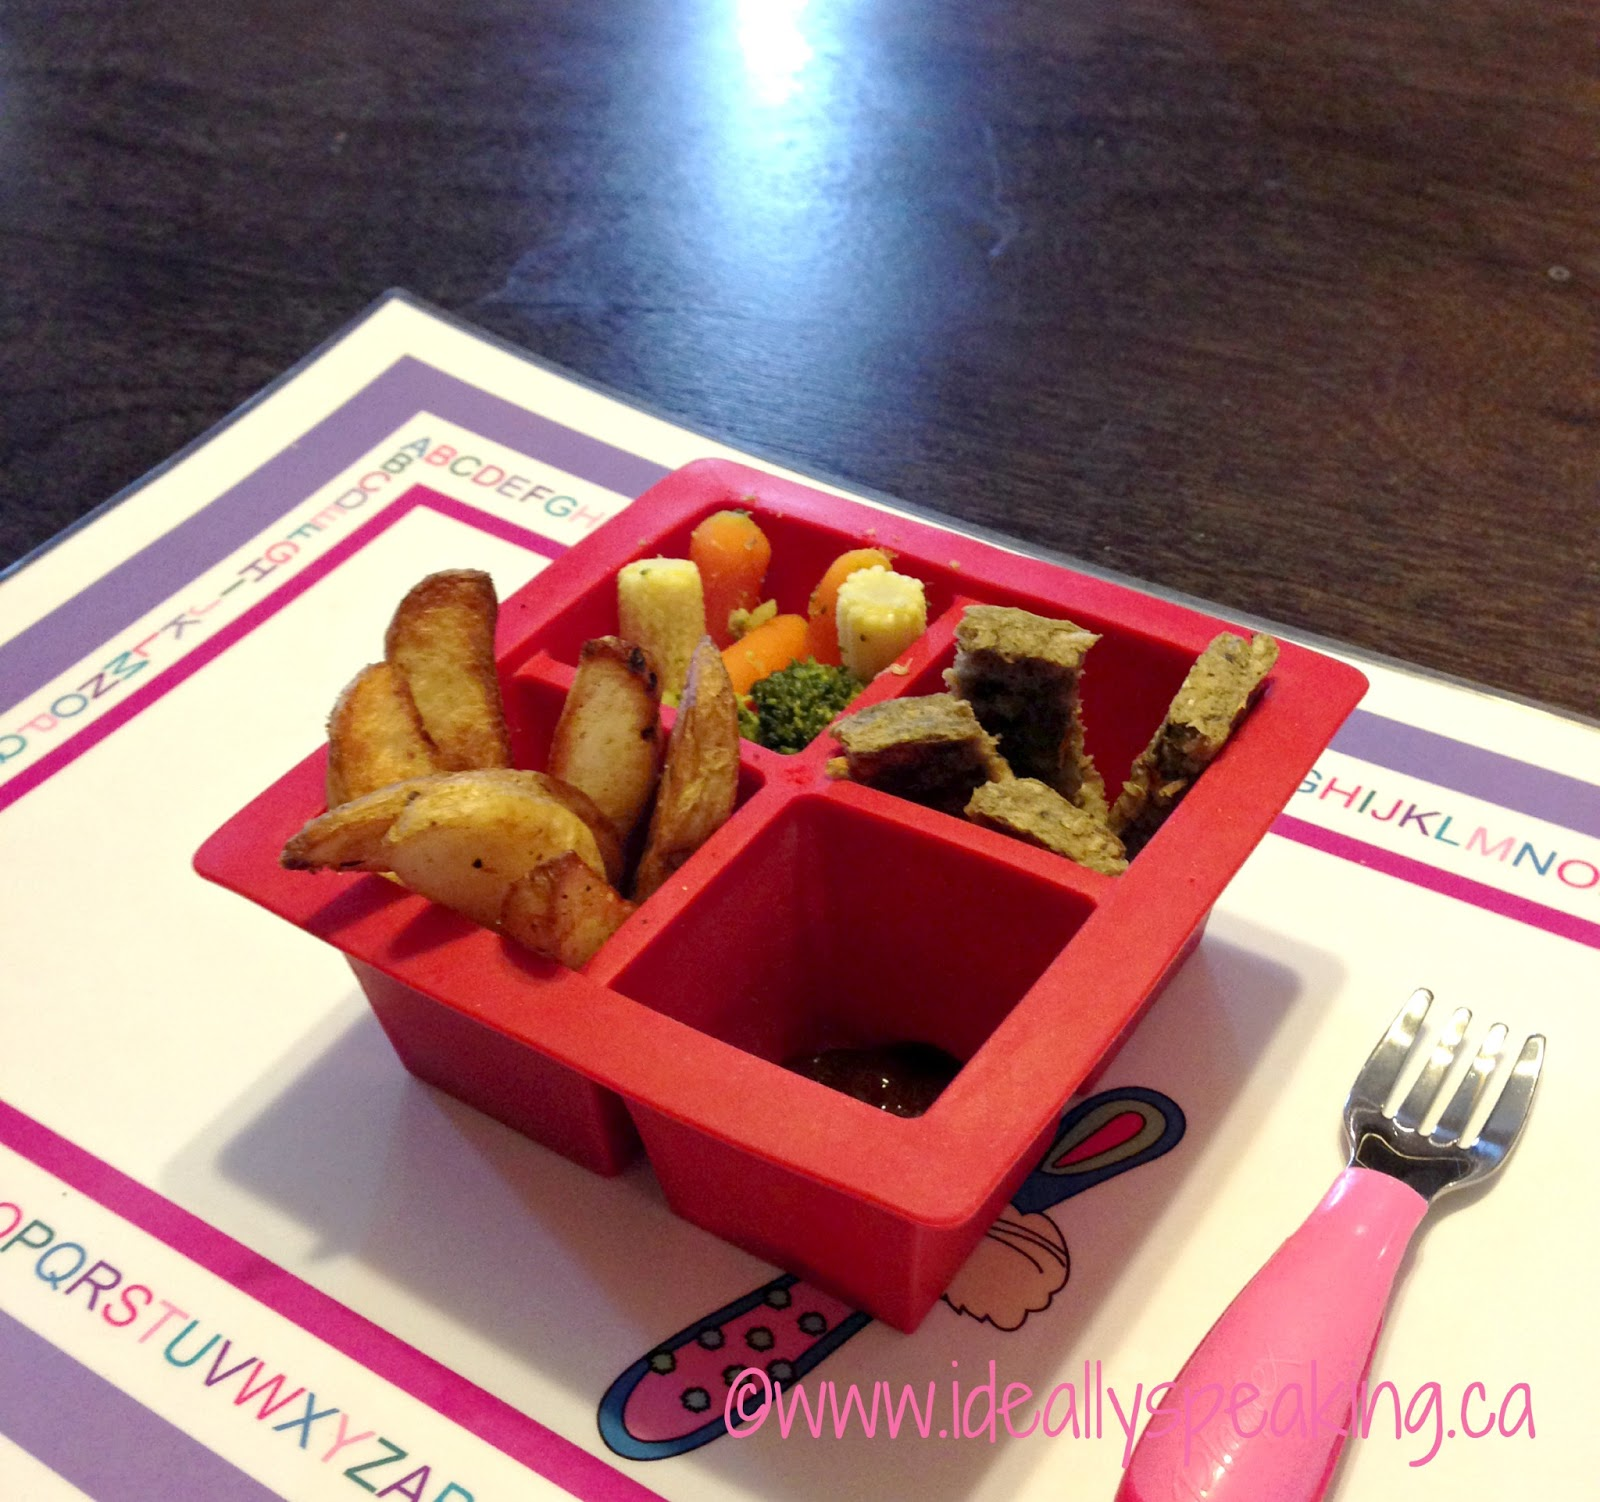 Cavendish Wedges, toddler meal, toddler buffet, finger foods, busy mom meal plans,